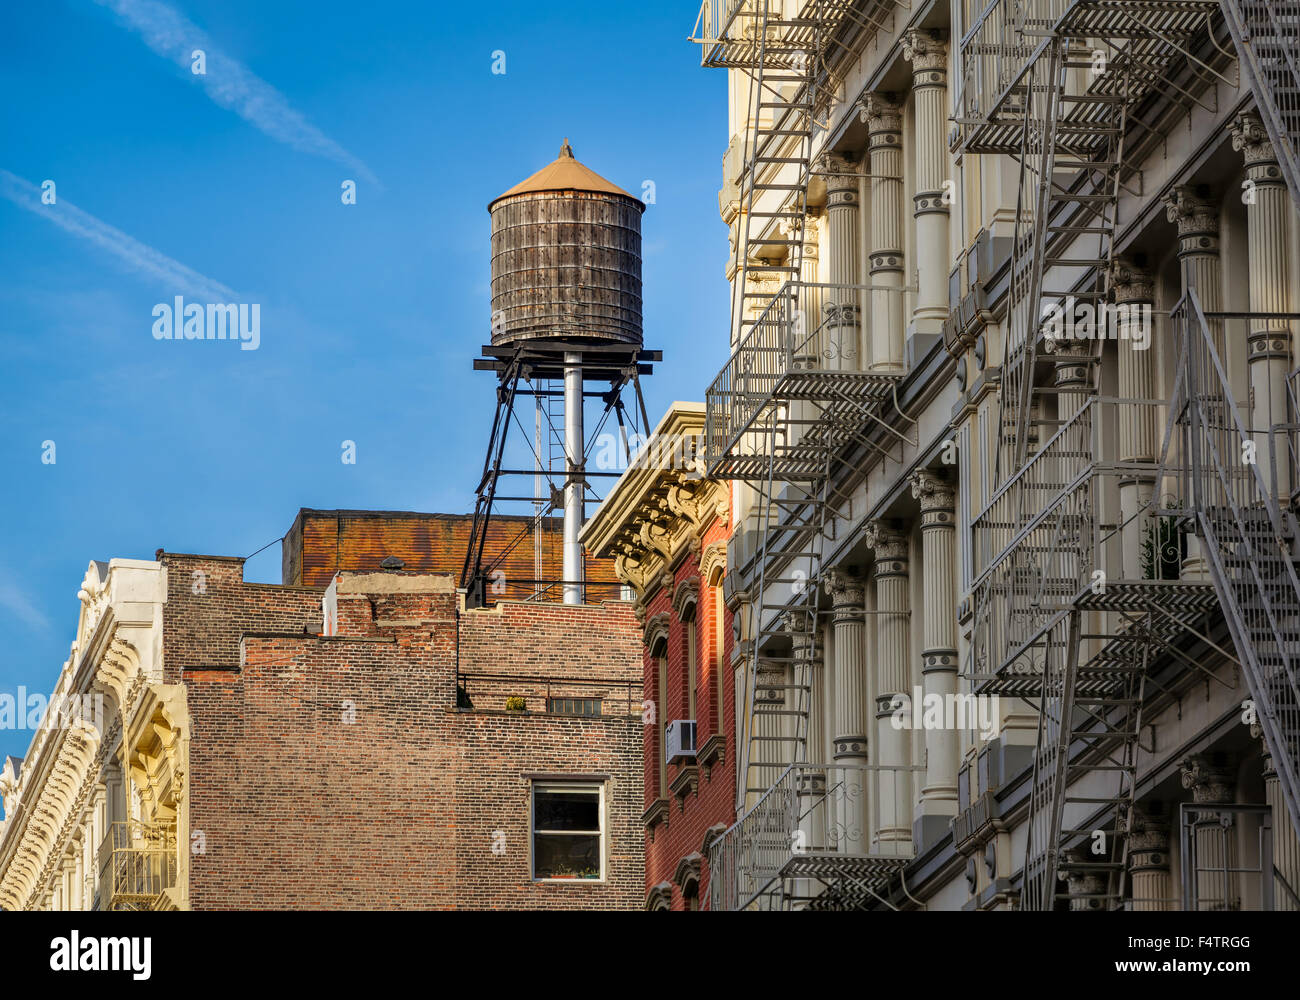 Wooden water tank and cast iron facade buildings with fire escapes, Soho, Downtown Manhattan, New York City - Stock Image